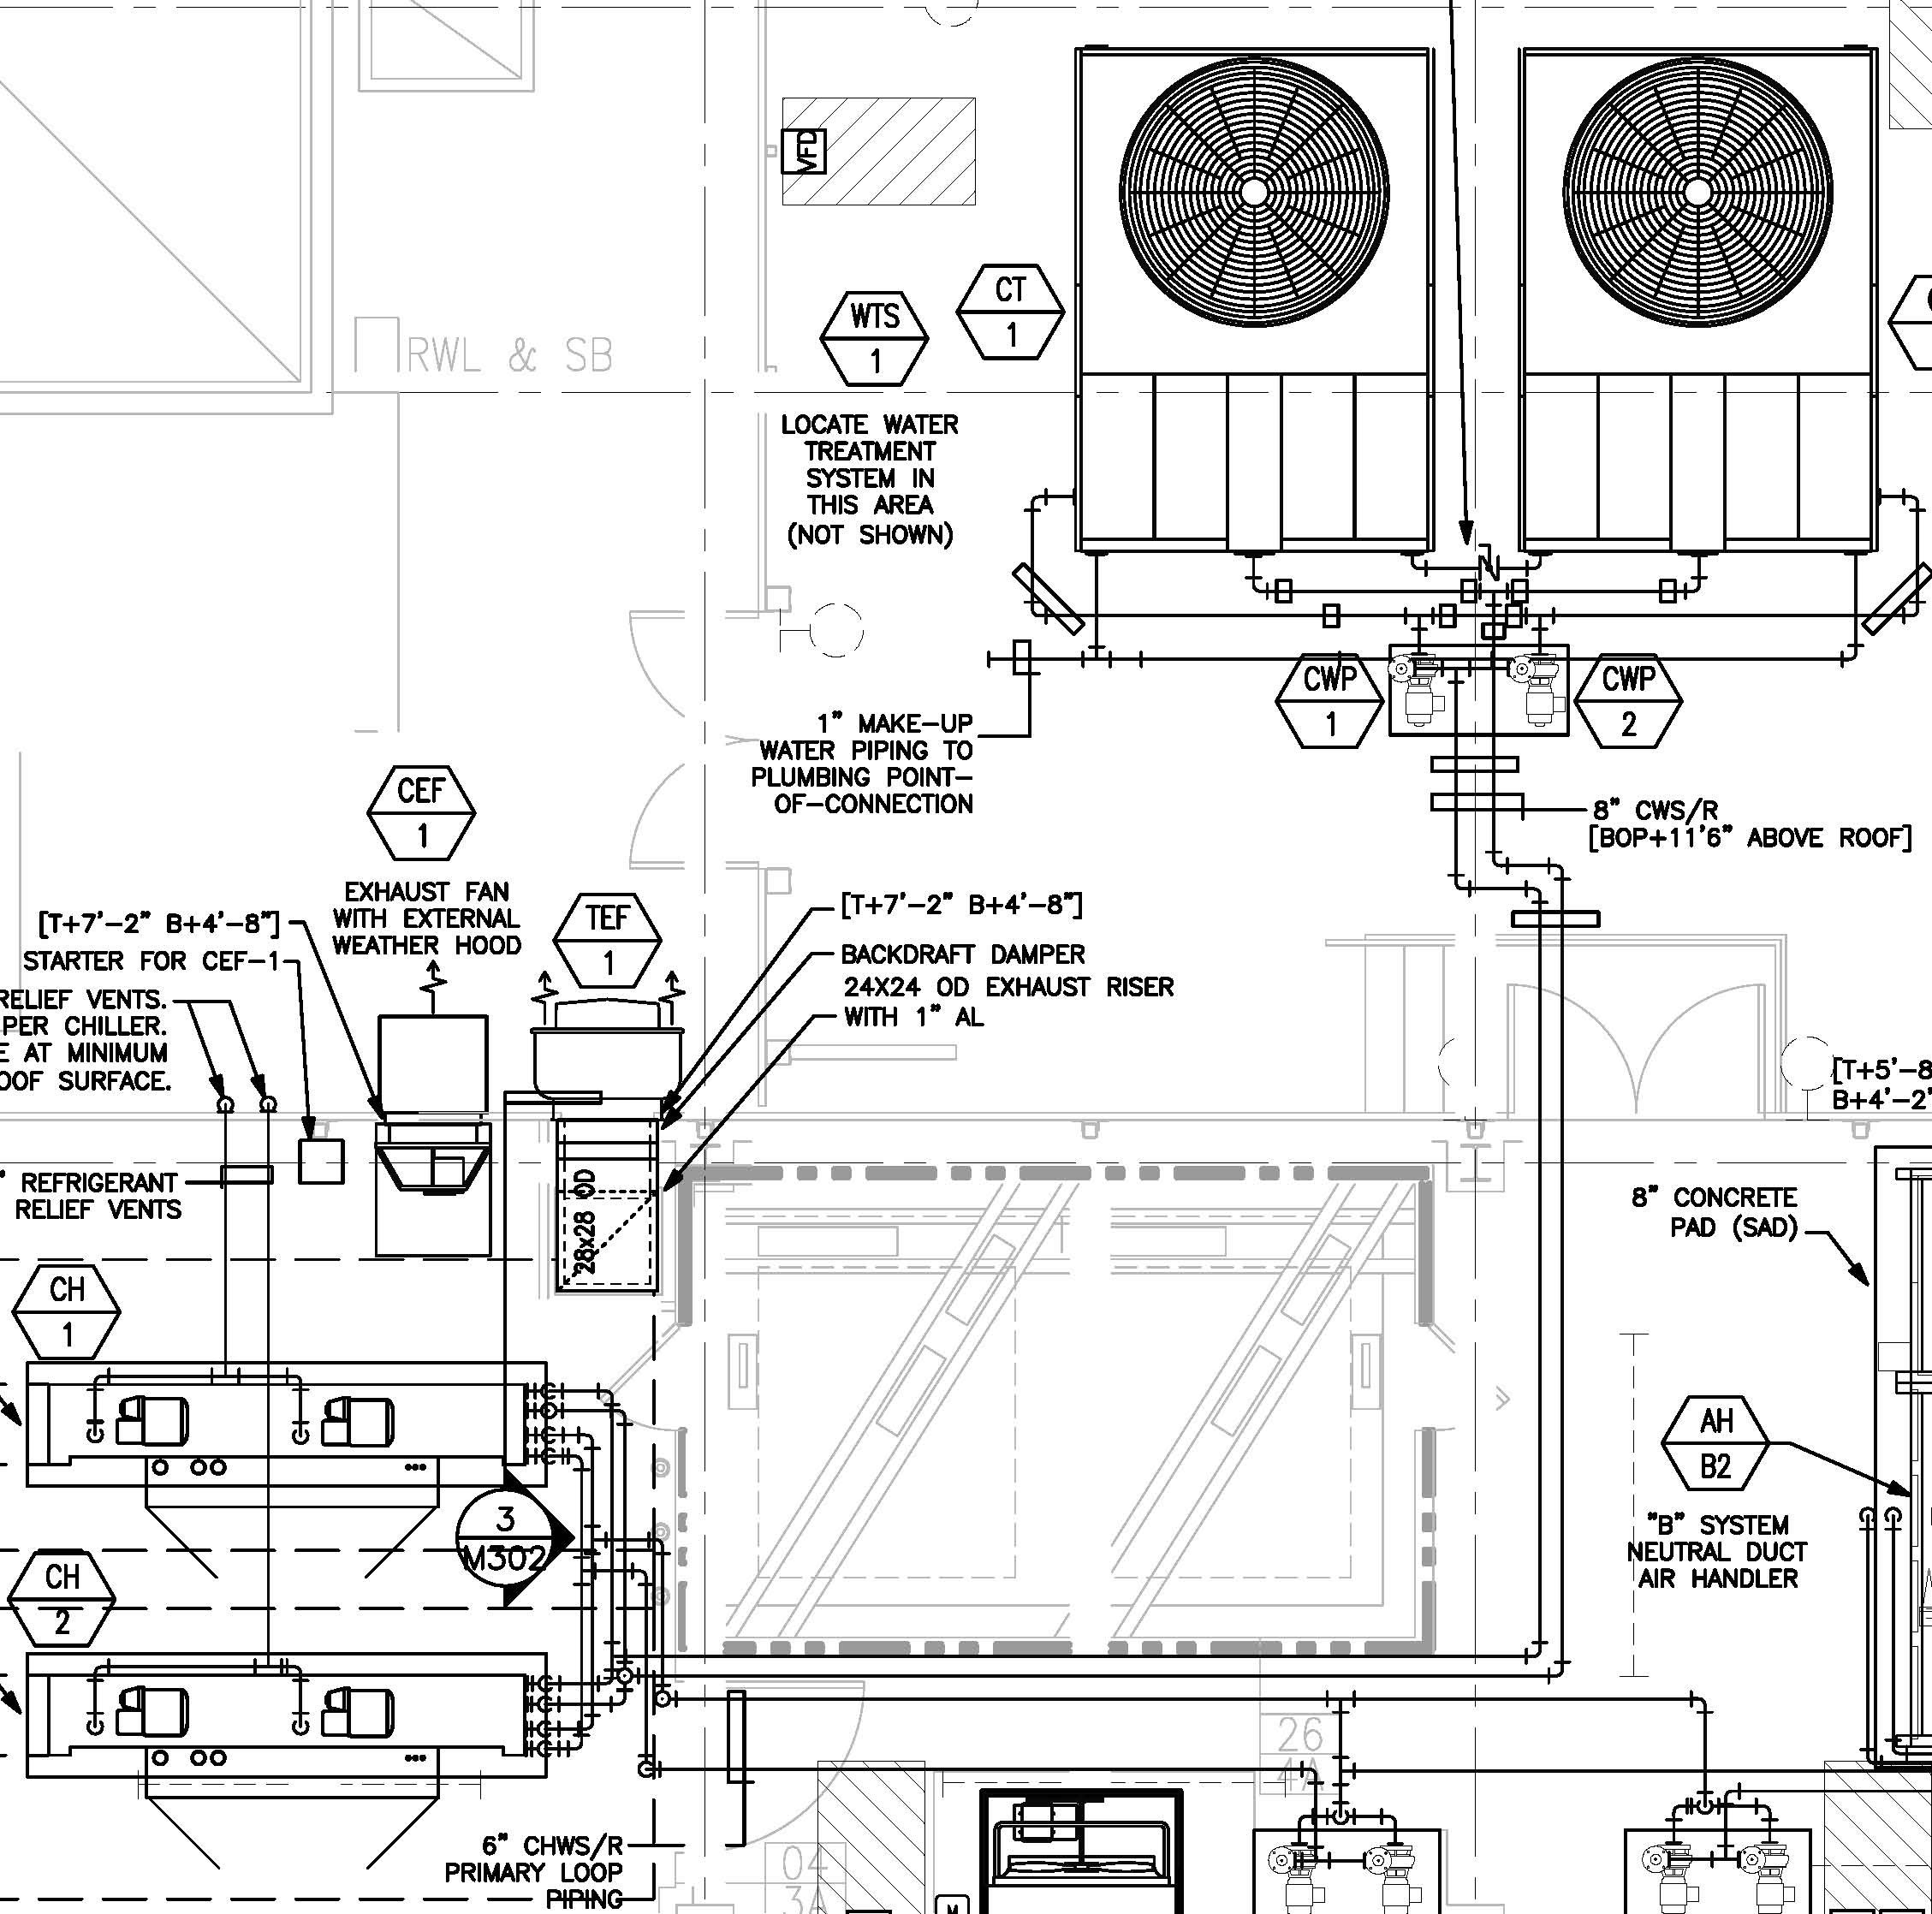 air conditioner wiring diagram Download-Wiring Diagram For A Ac Unit New Ac Unit Wiring Diagram Unique Split System Air Conditioner Wiring 5-b